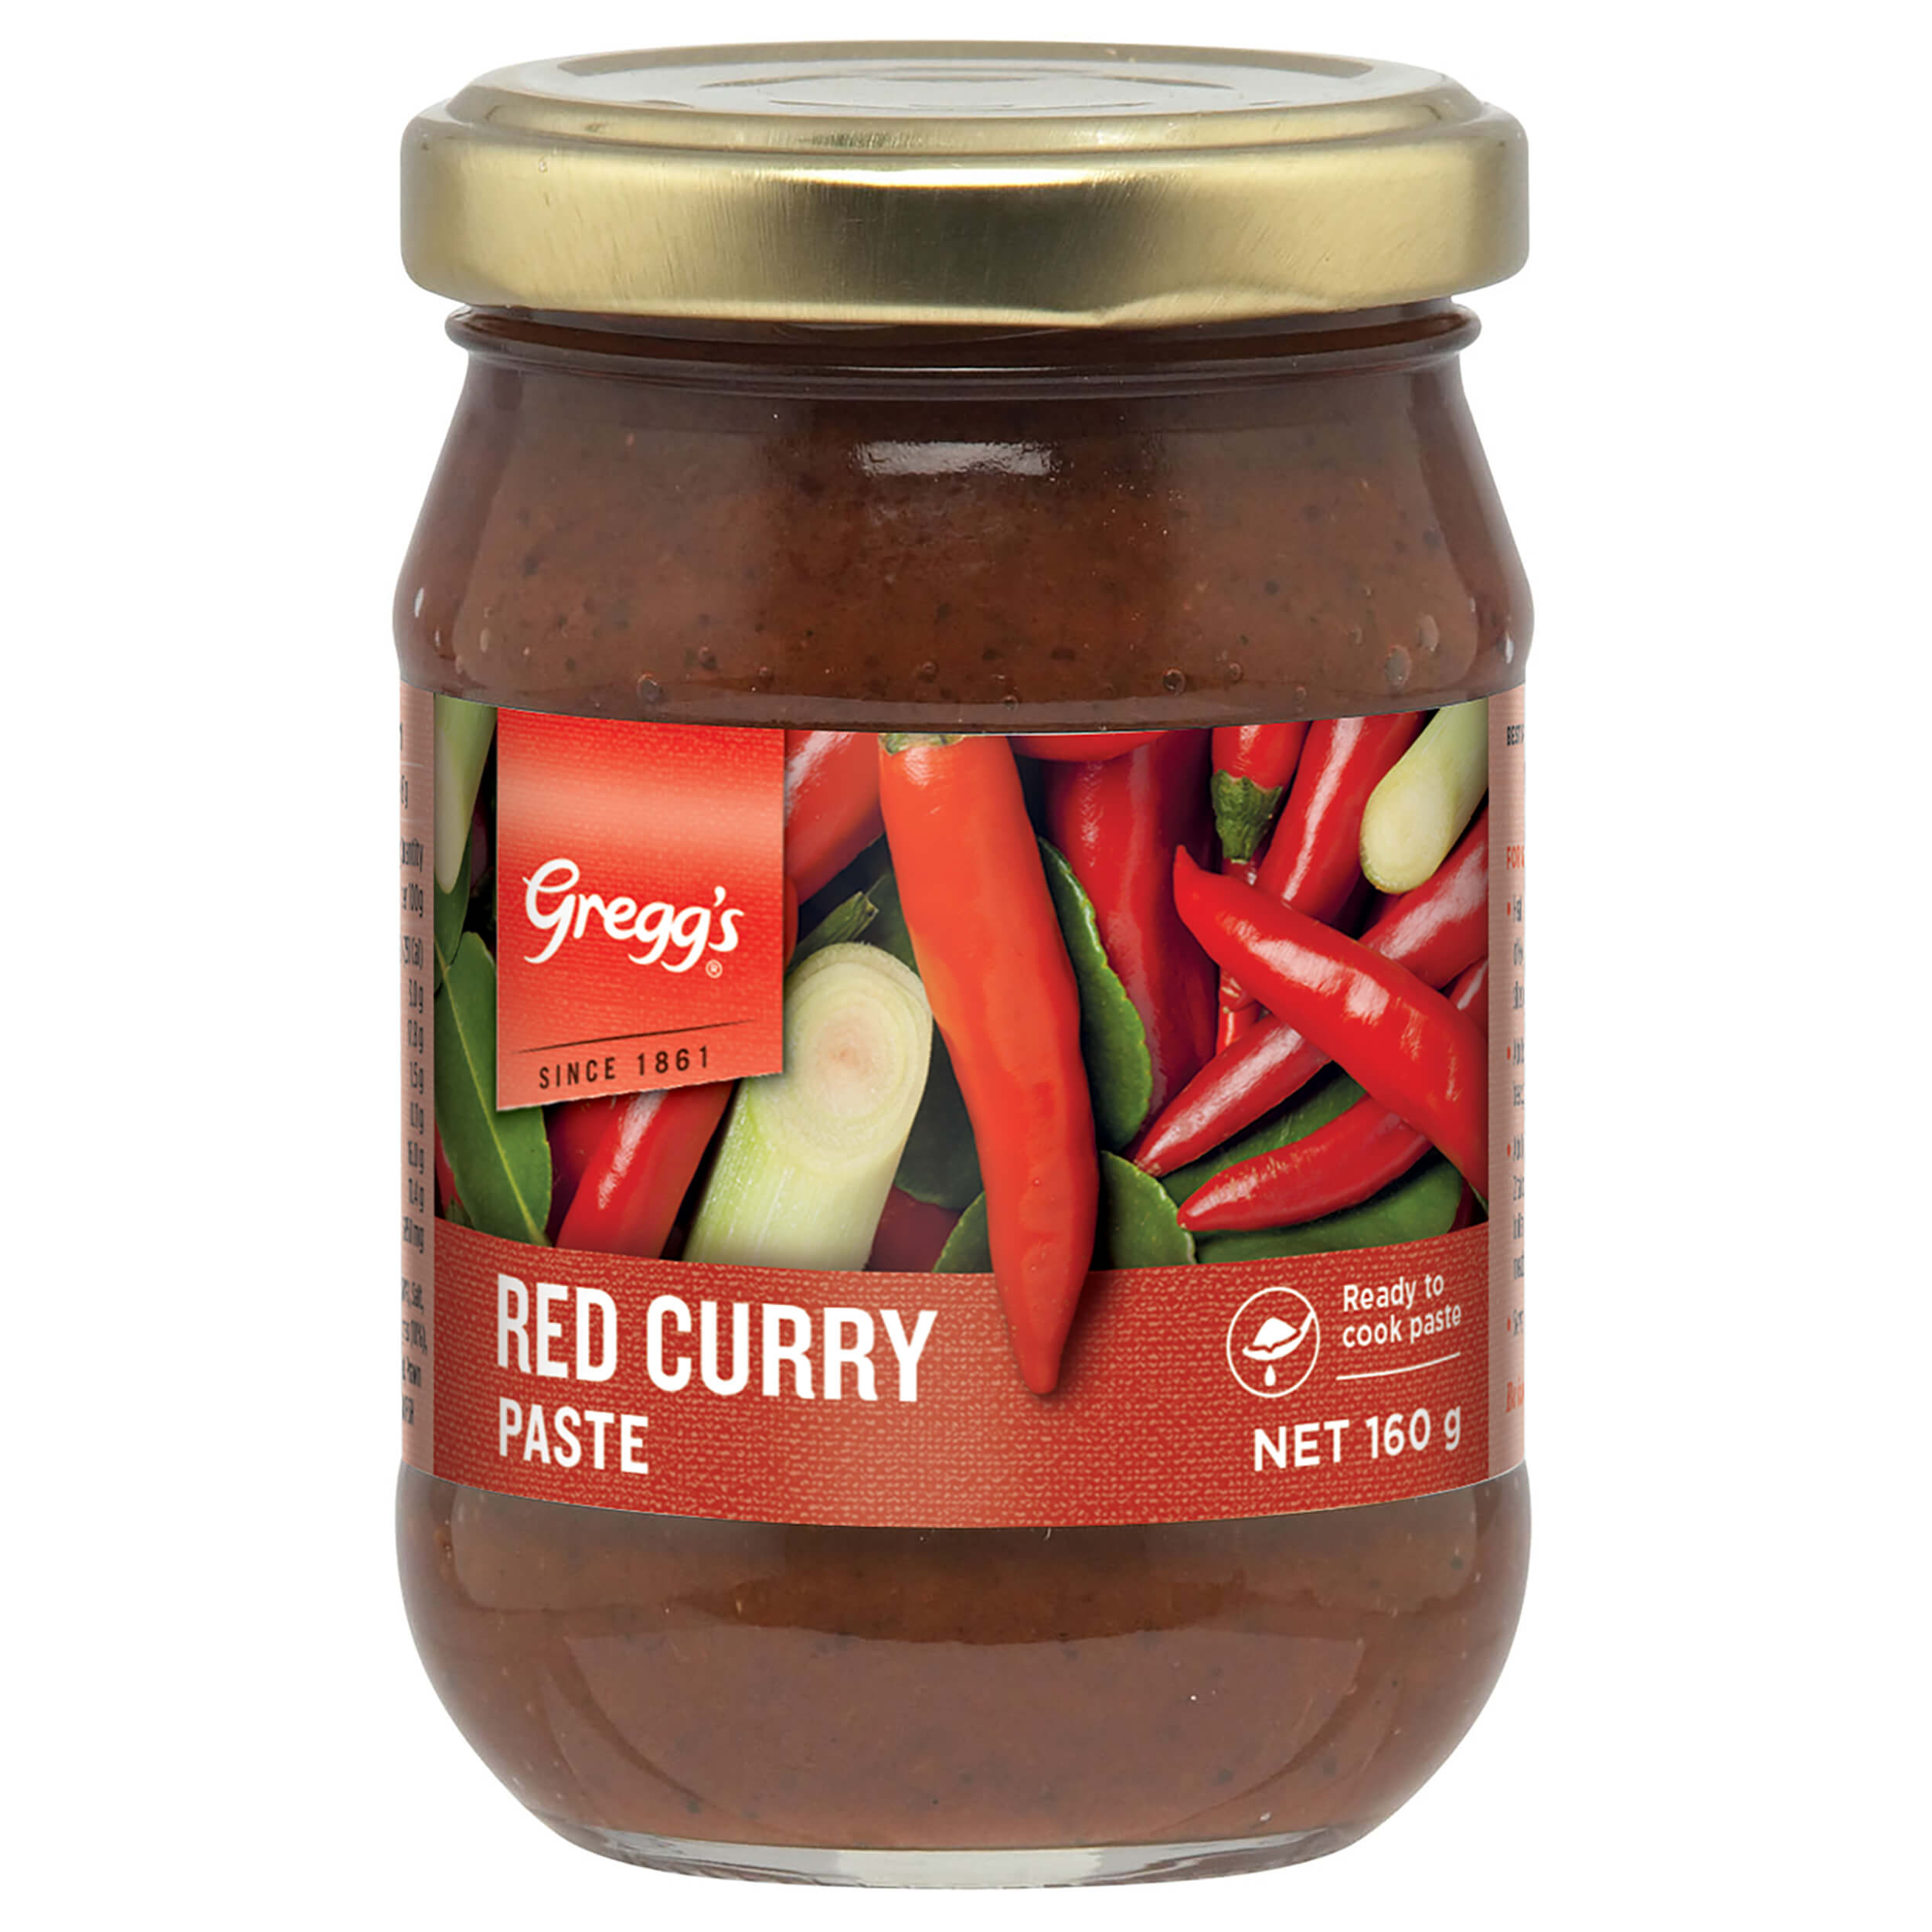 Red Curry Paste image